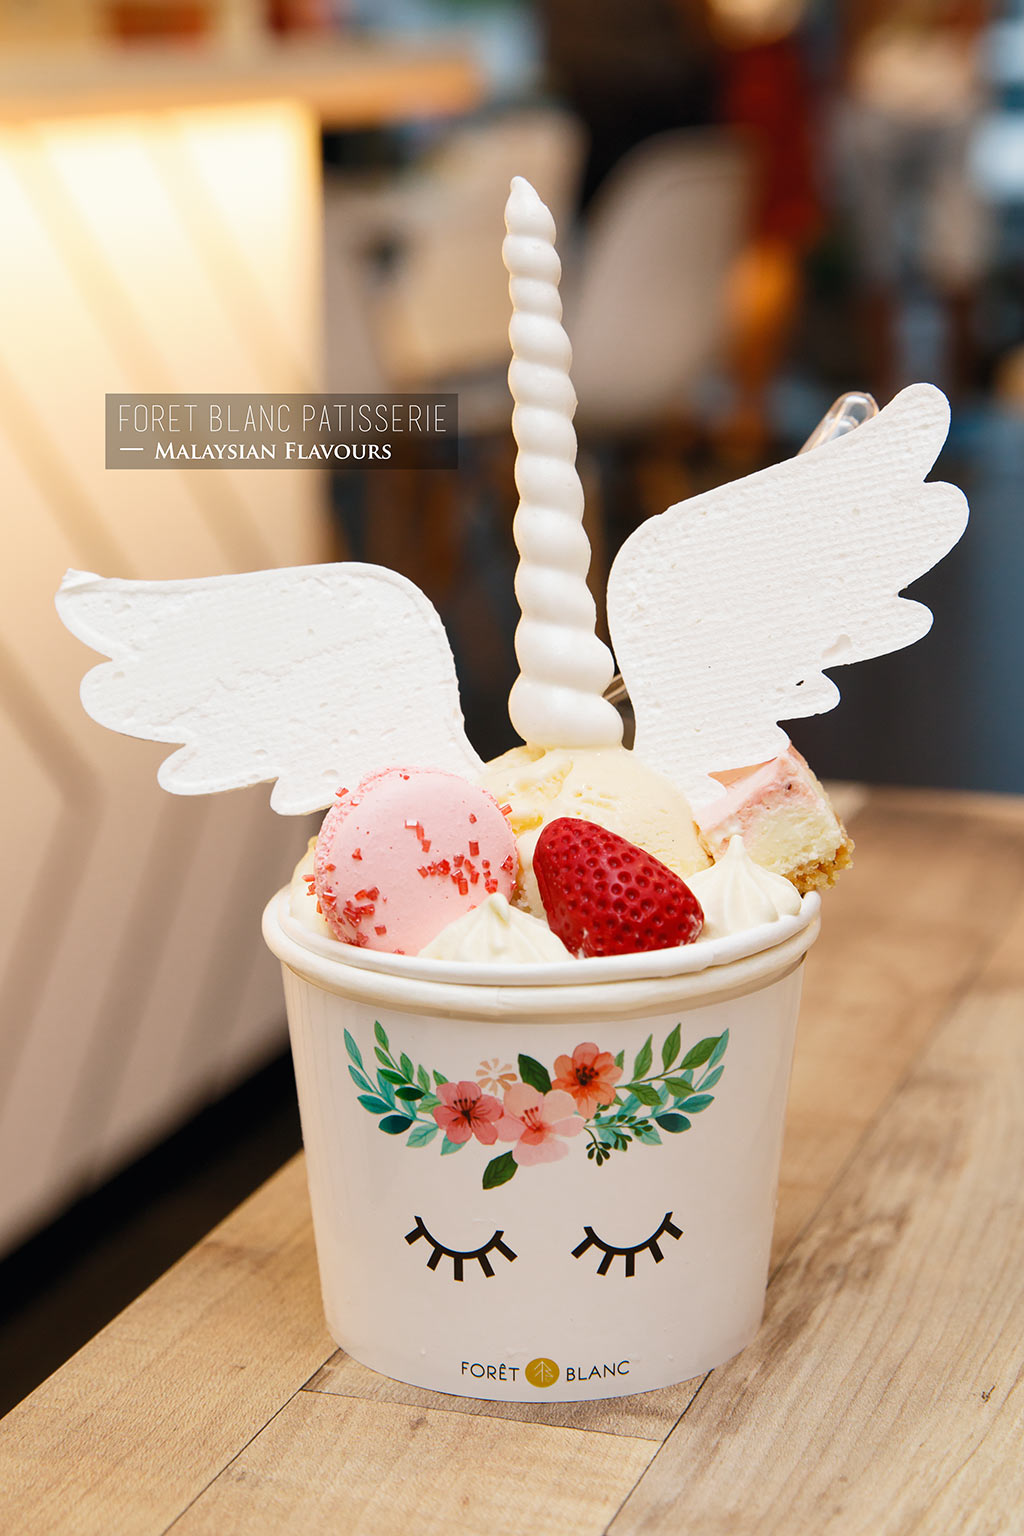 Foret Blanc Patisserie unicorn ice cream